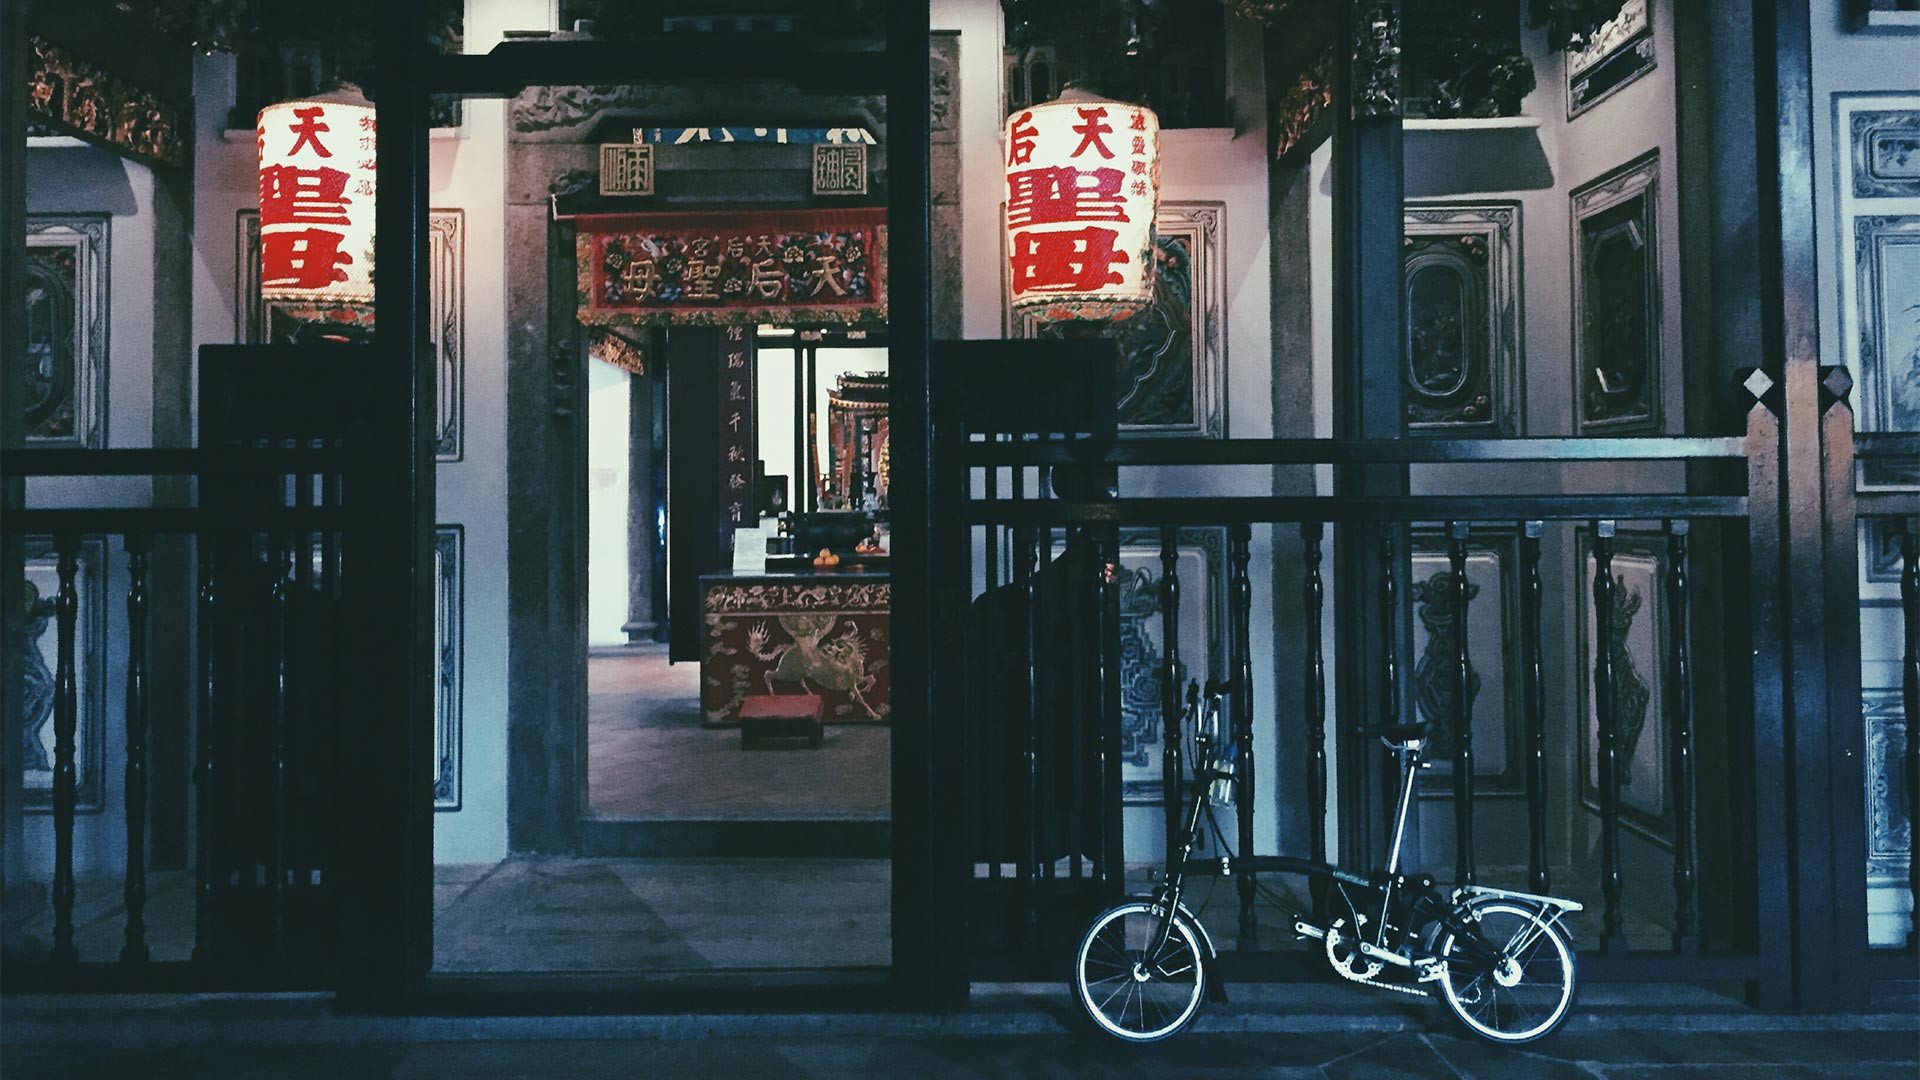 Brompton bike in front of traditional building #myunseencity